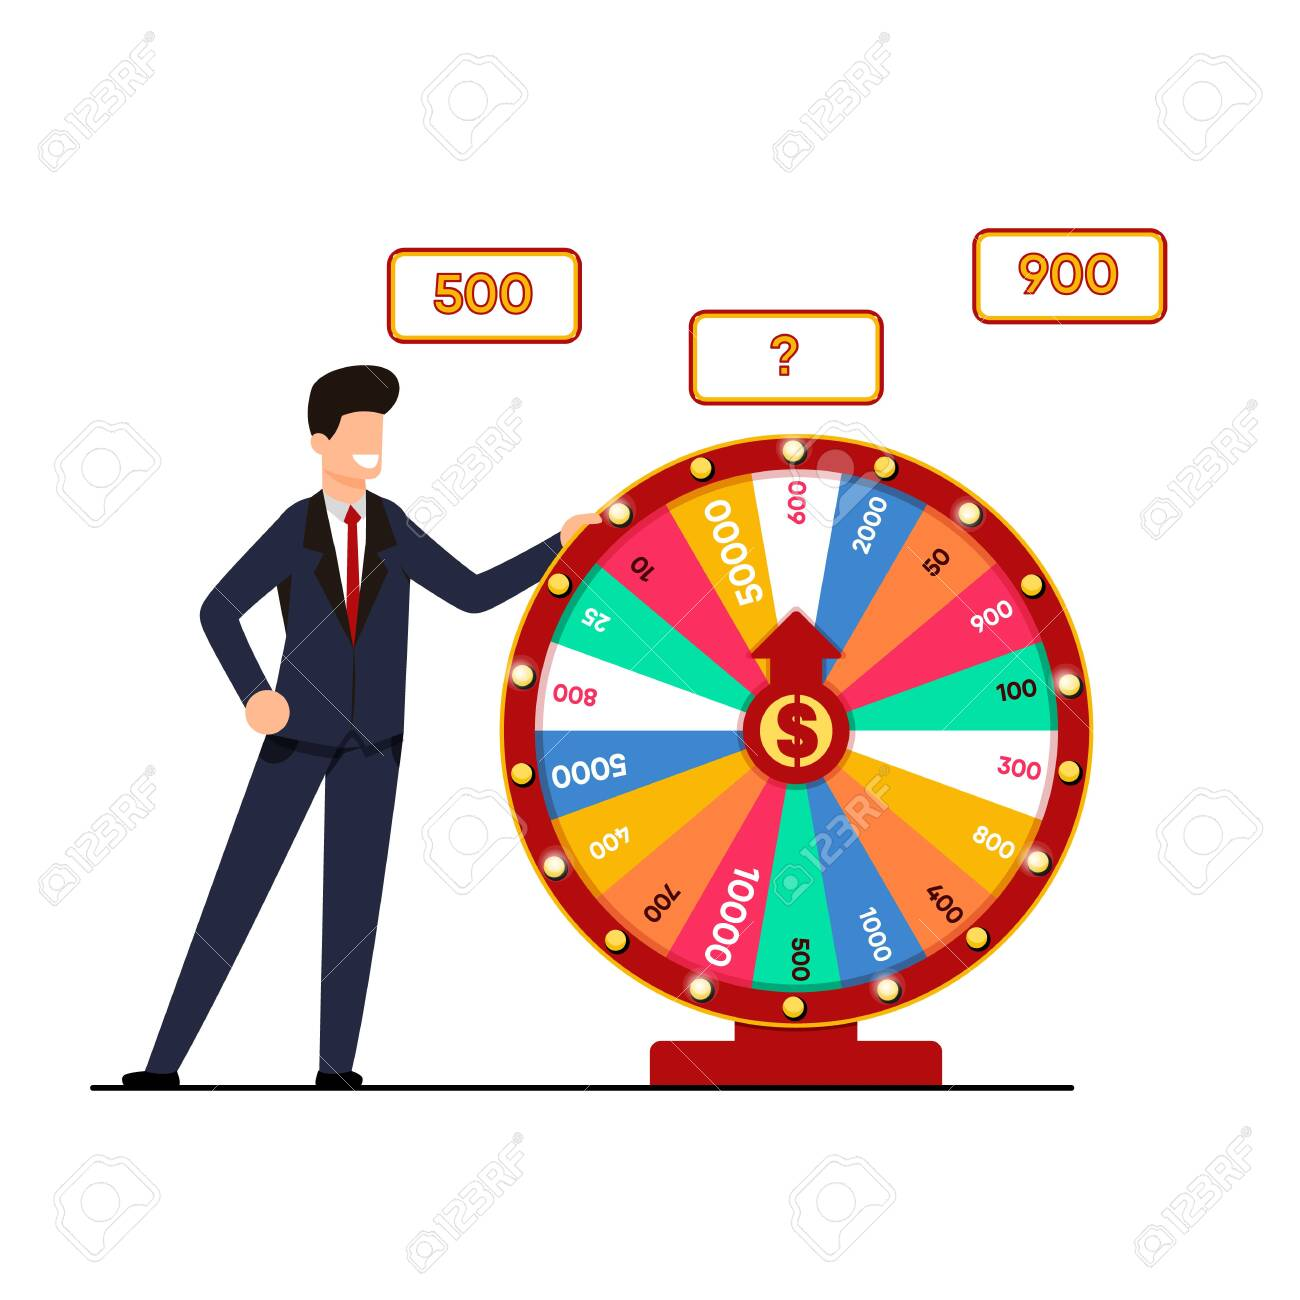 Lottery with Wheel Fortune Vector Illustration. Man Suit Holds Lottery Draw, Spinning Wheel with Winning Amount. Chance to Break Big Score. Fun and Dry for those who Love Risk Cartoon. - 122832144